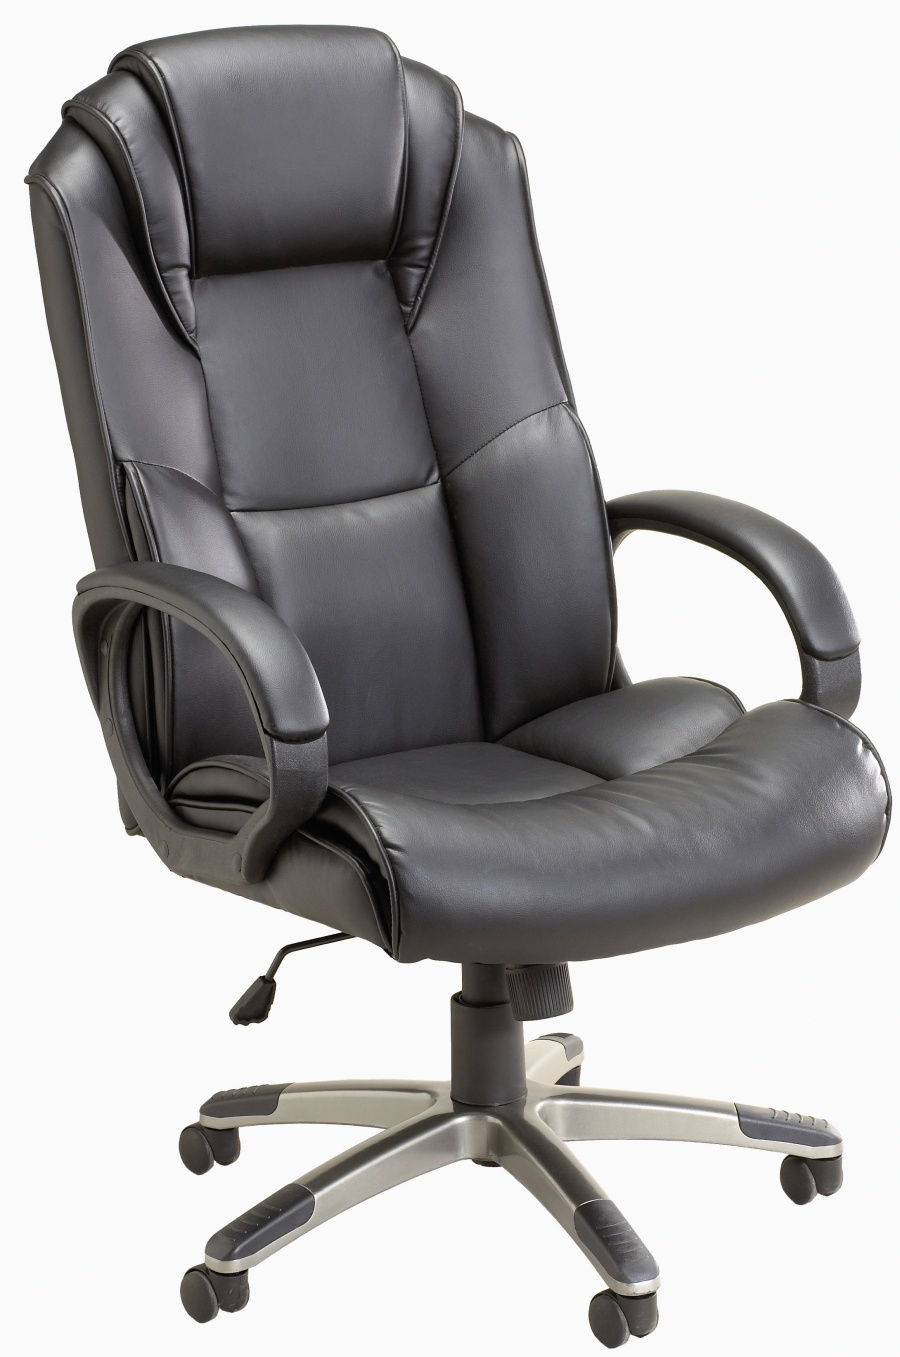 Fauteuil ministre OLYMPE